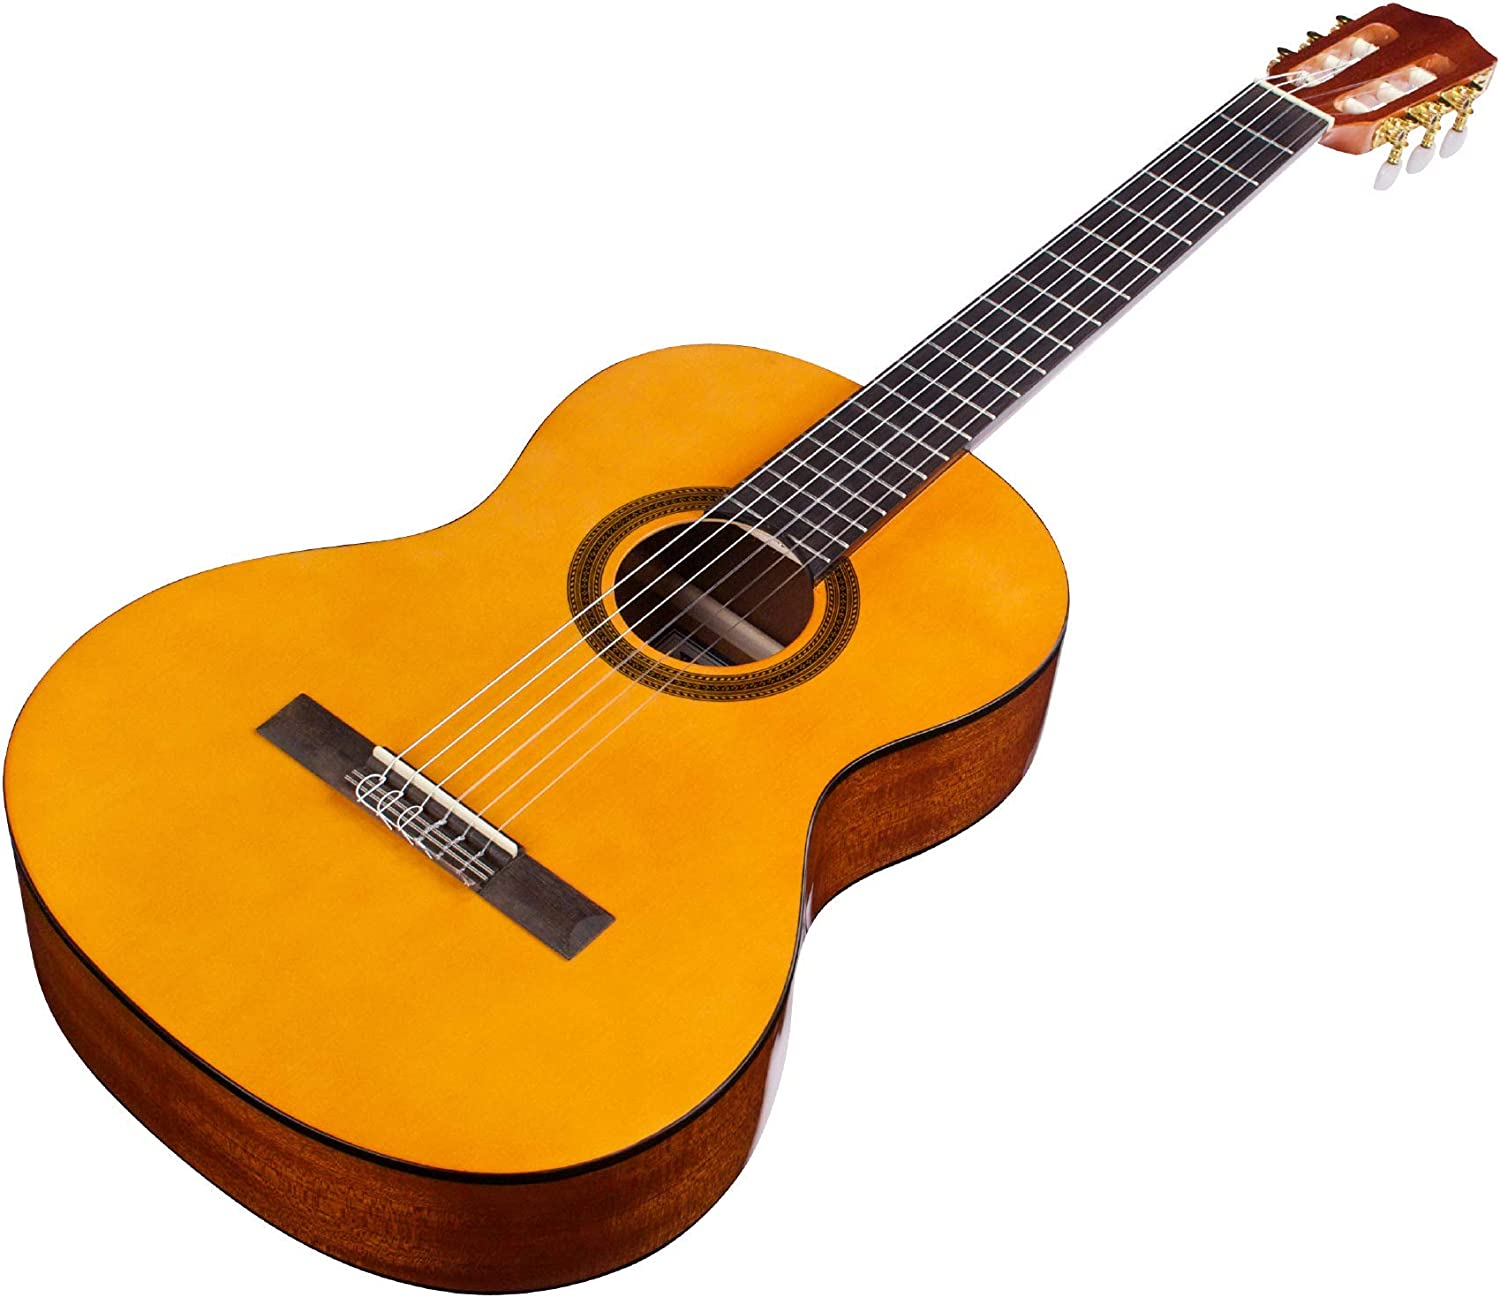 Cordoba Guitars Protege C1 ¾ Size Acoustic Nylon String Guitar